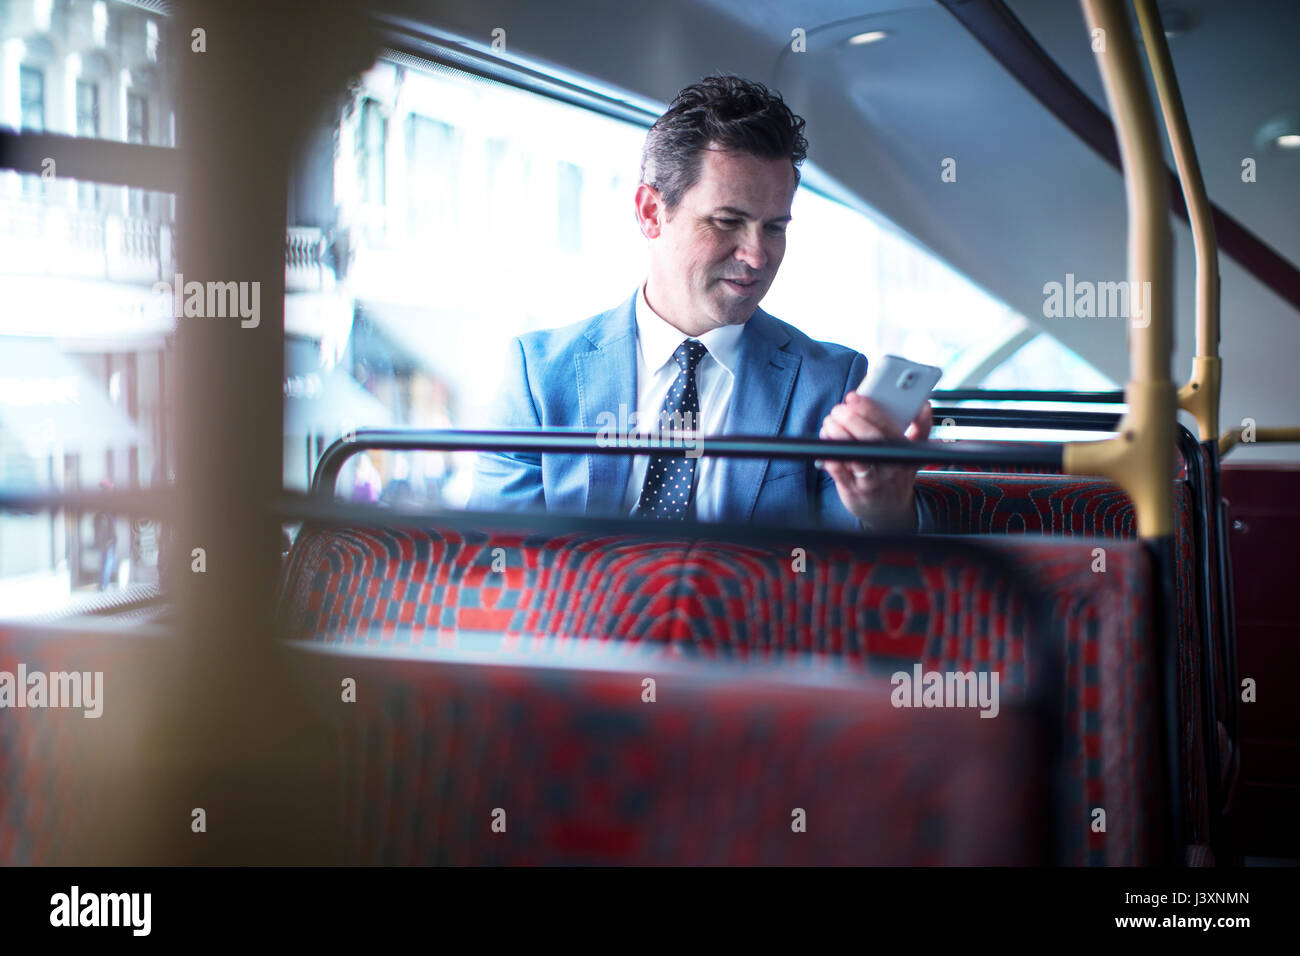 Businessman looking at smartphone on double decker bus - Stock Image